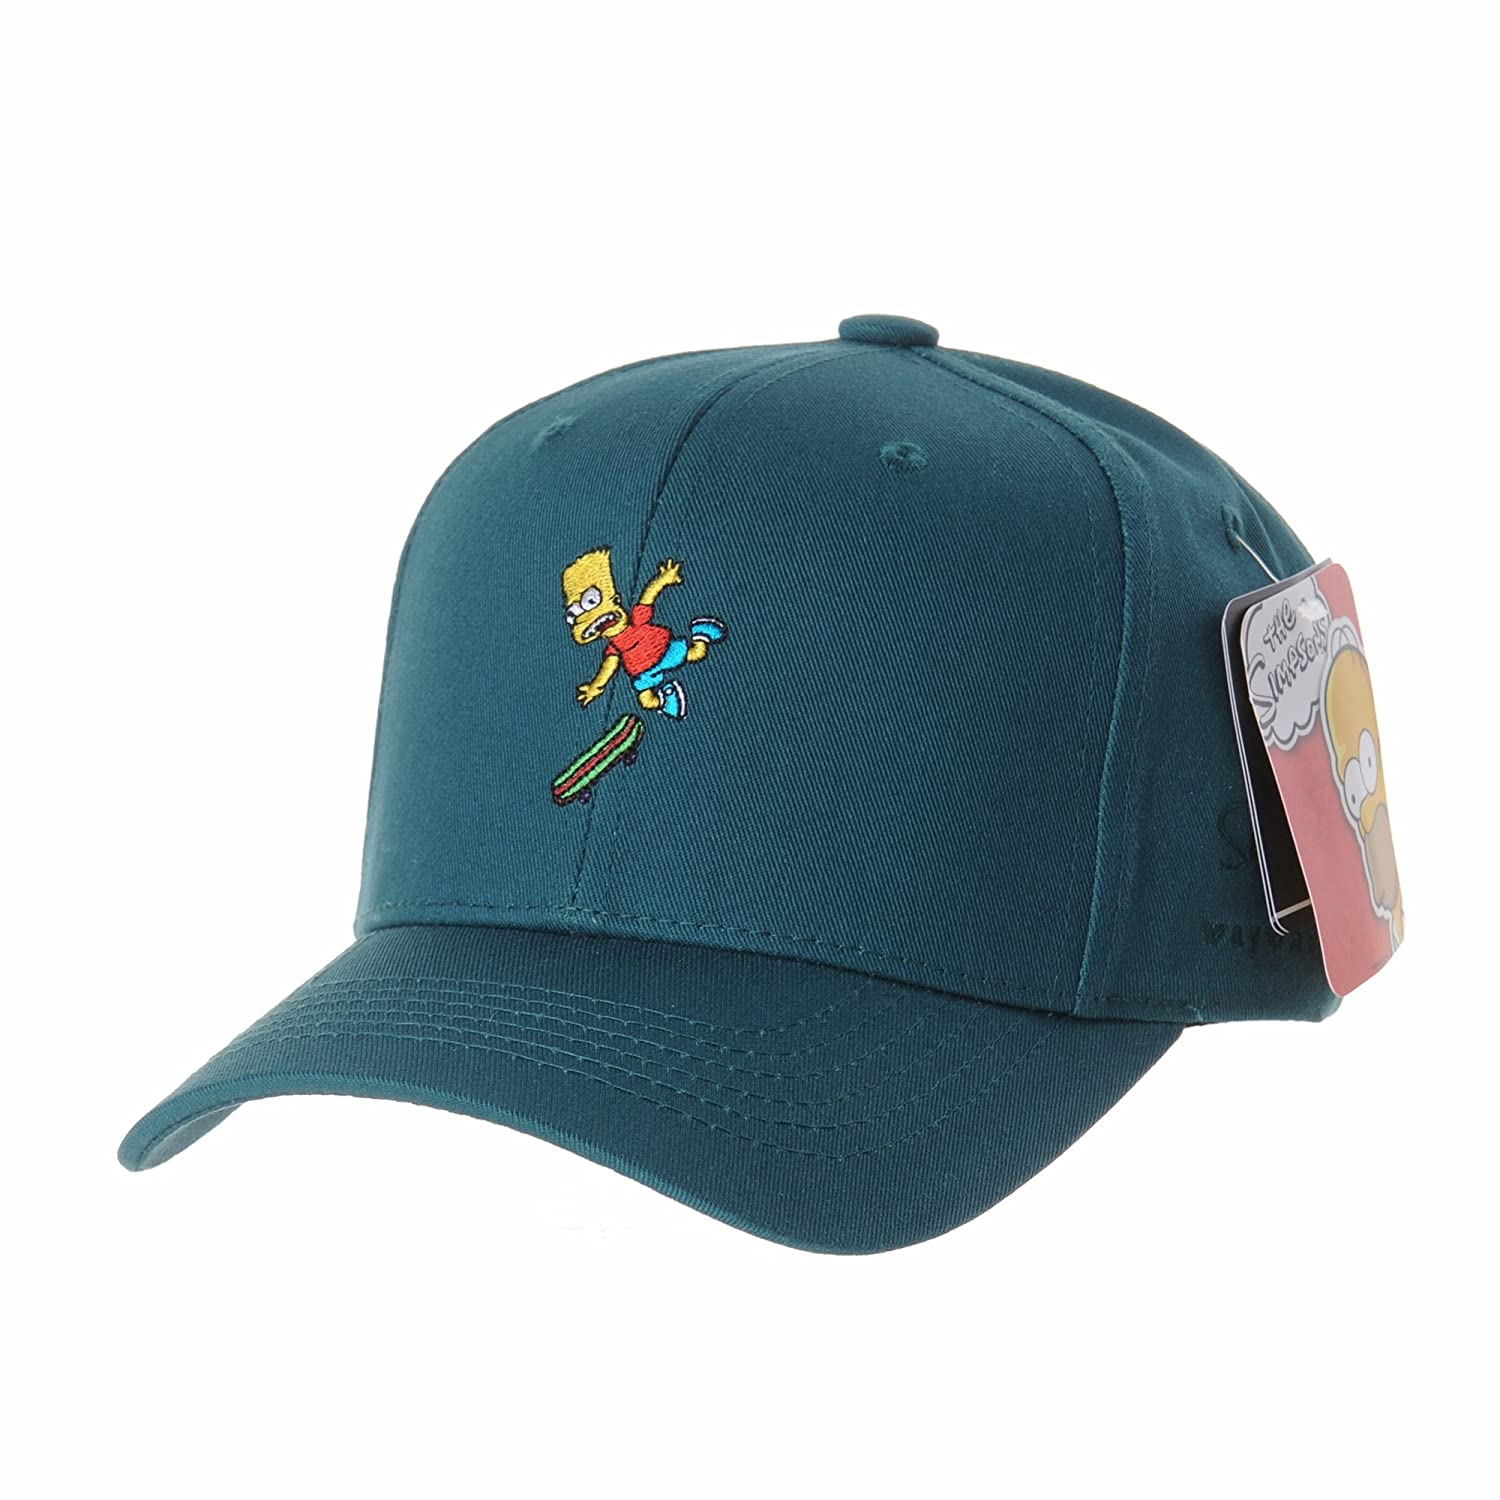 WITHMOONS Gorras de béisbol gorra de Trucker sombrero de The Simpsons Ball  Cap Bart Skateboard Matt 496dcd22b28